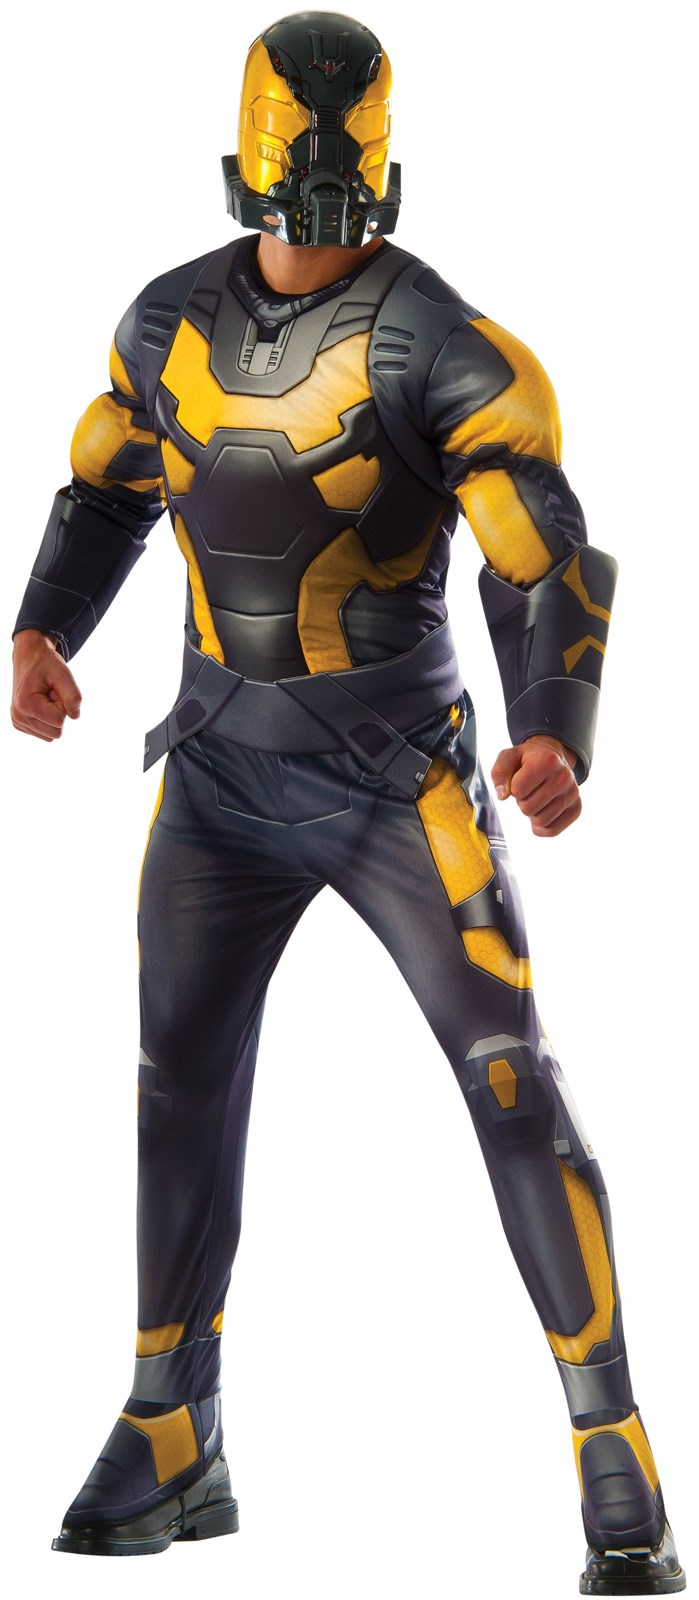 Yellow jacket - Deluxe Ant Man Yellow Jacket Costume For Adults